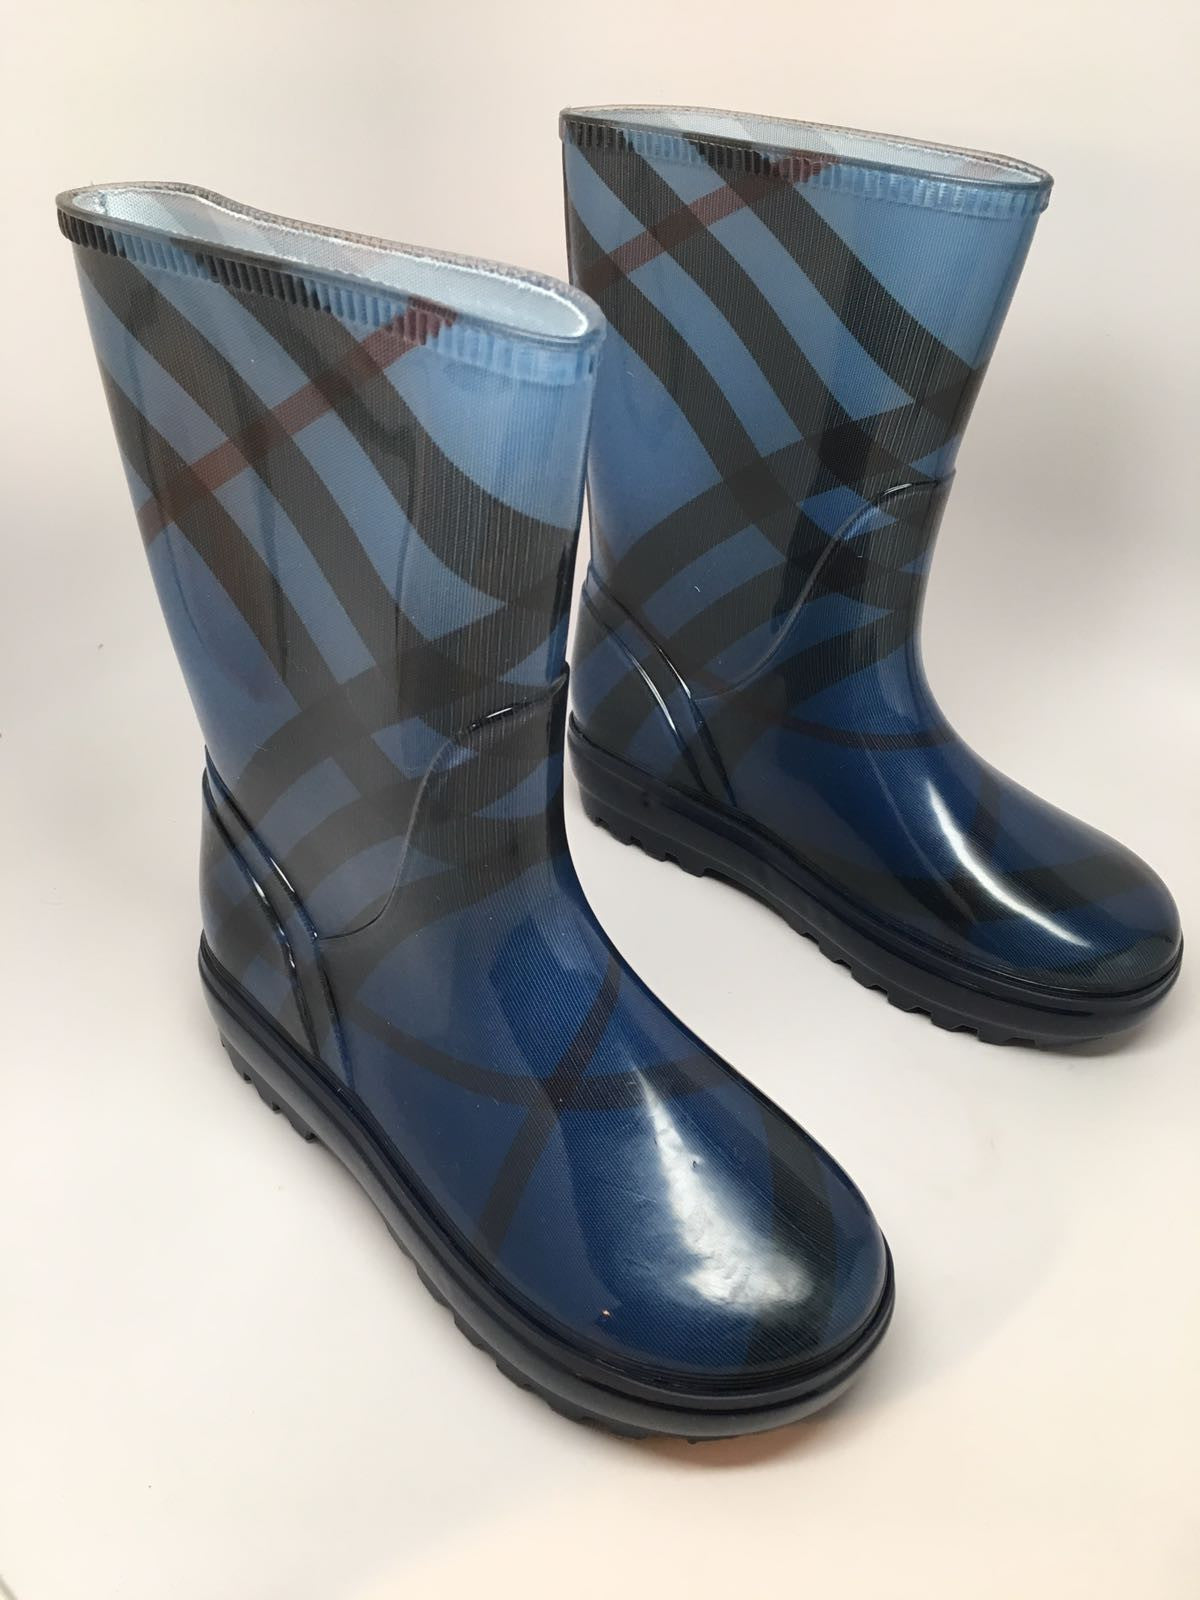 BURBERRY FROGRISE RAIN BOOT, JET BLUE - SIZE 35/36